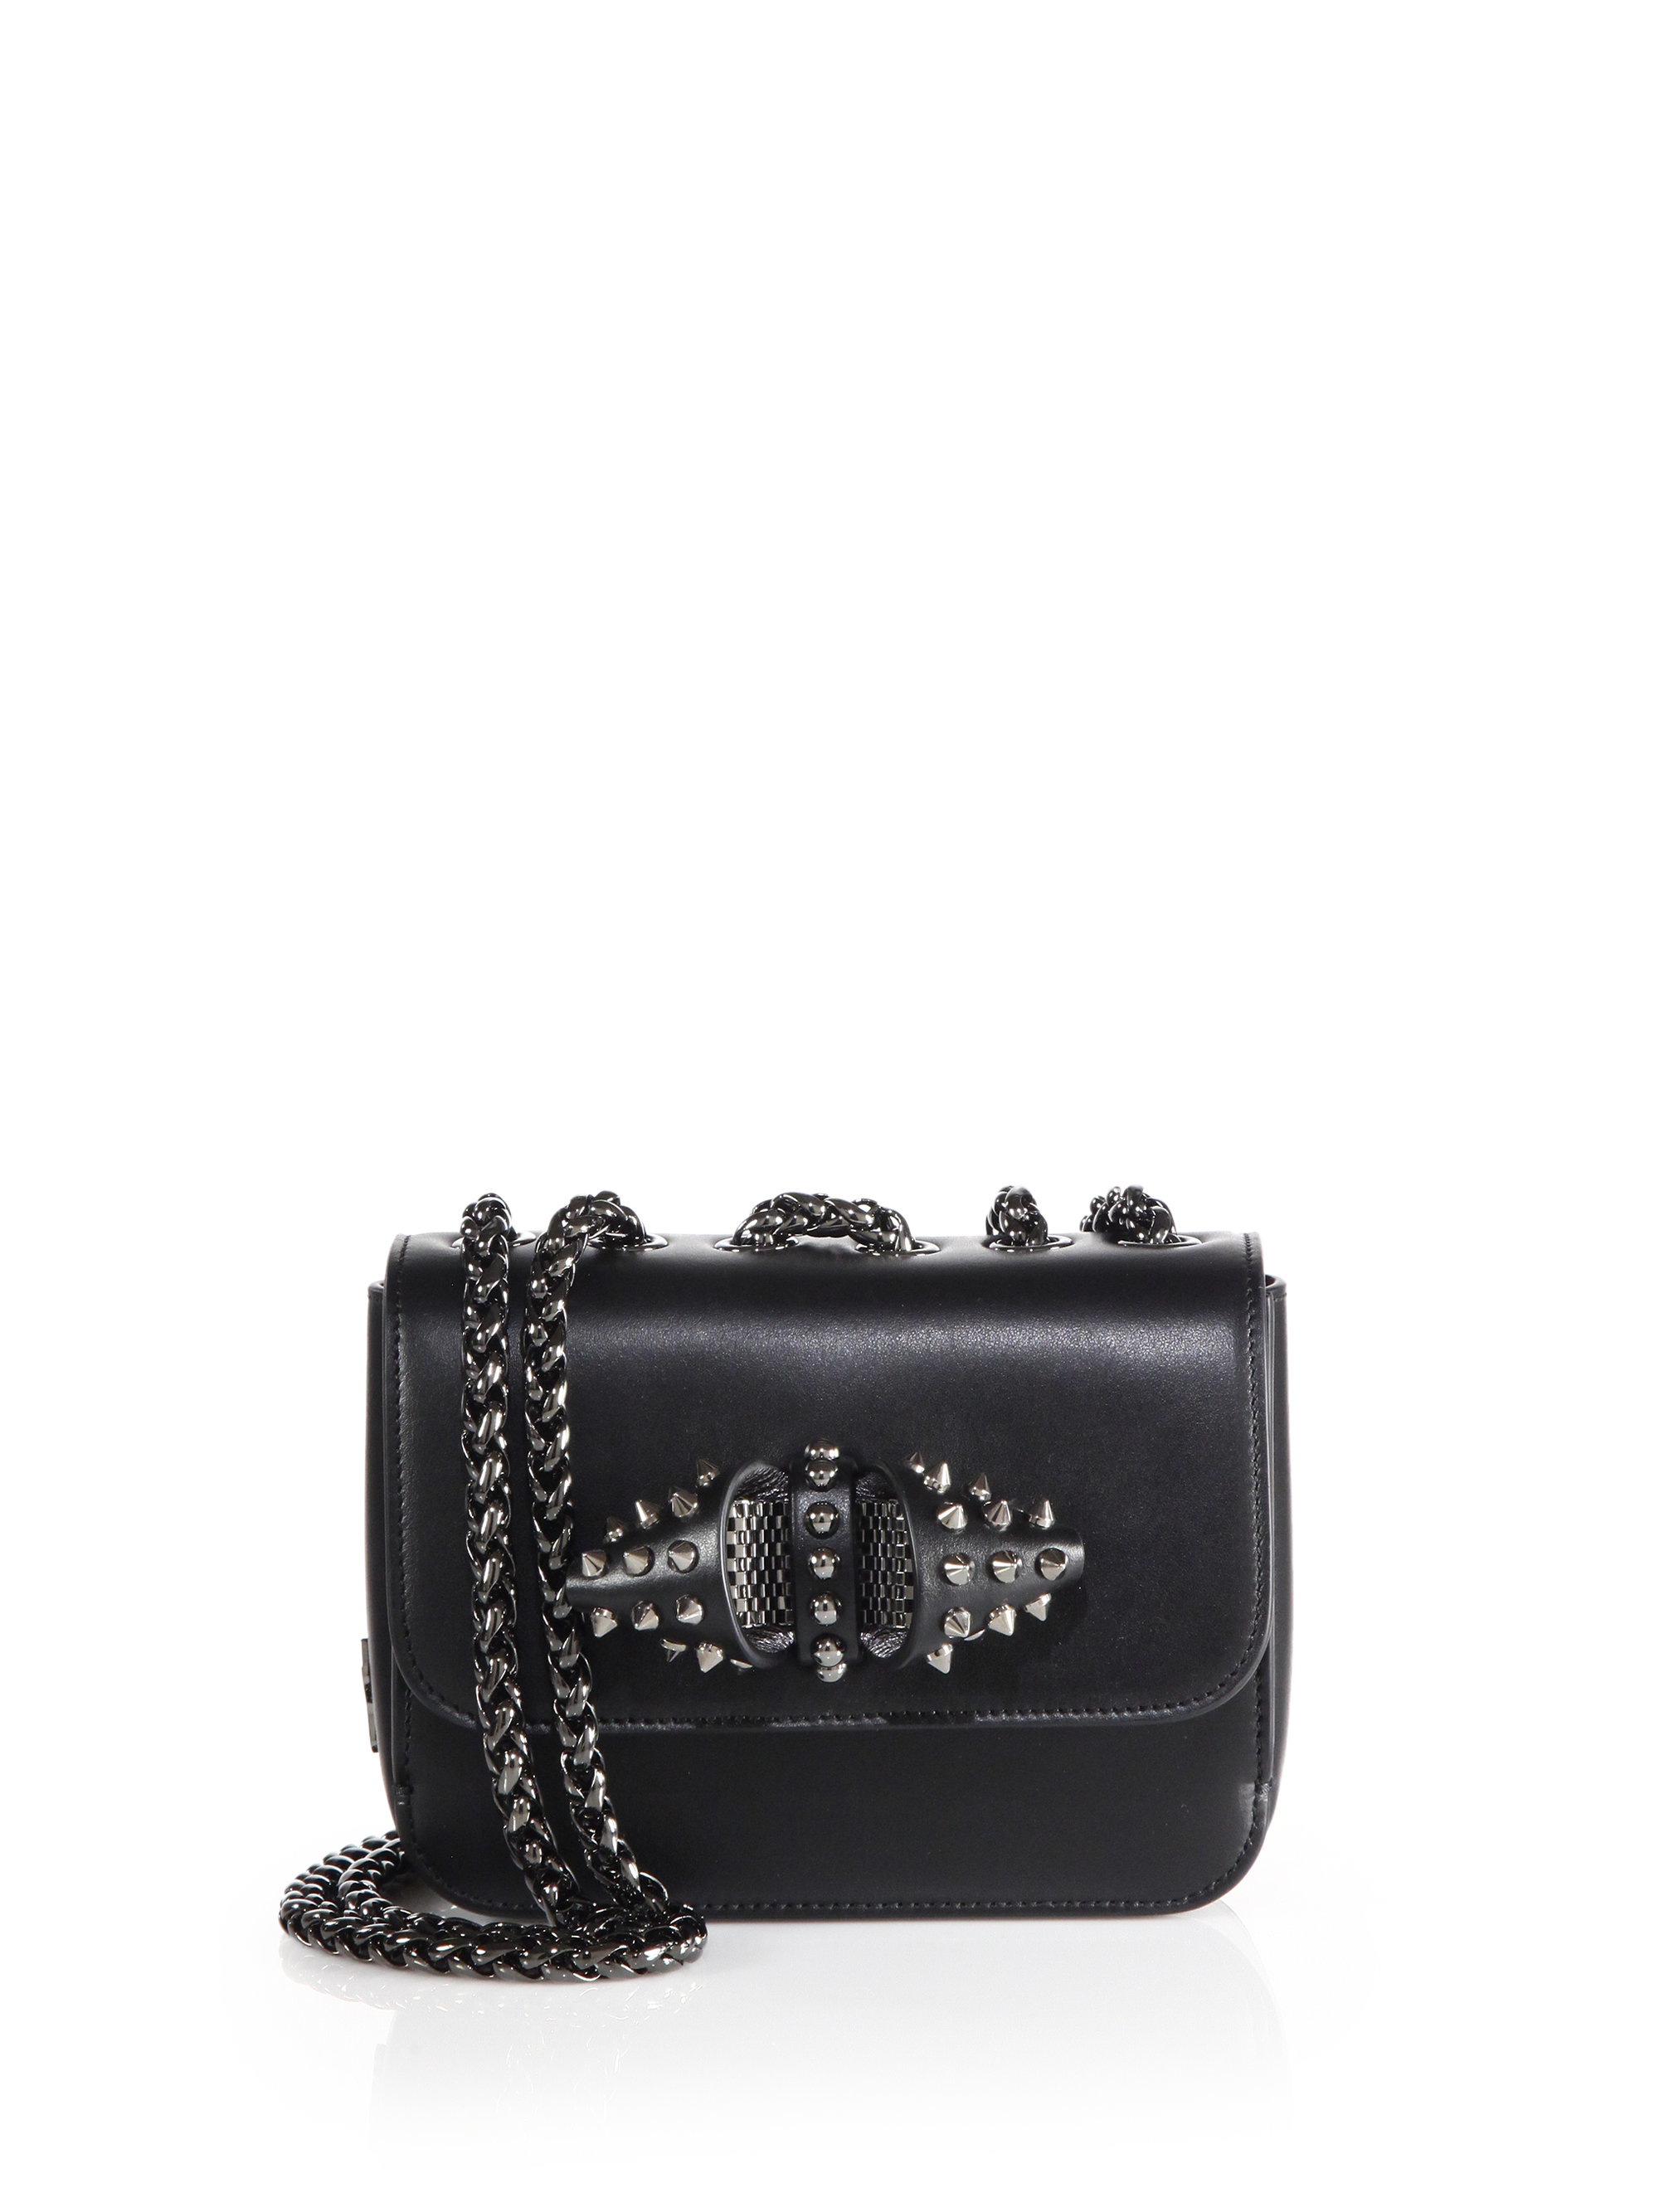 Christian louboutin Sweet Charity Baby Studded Leather Crossbody ...